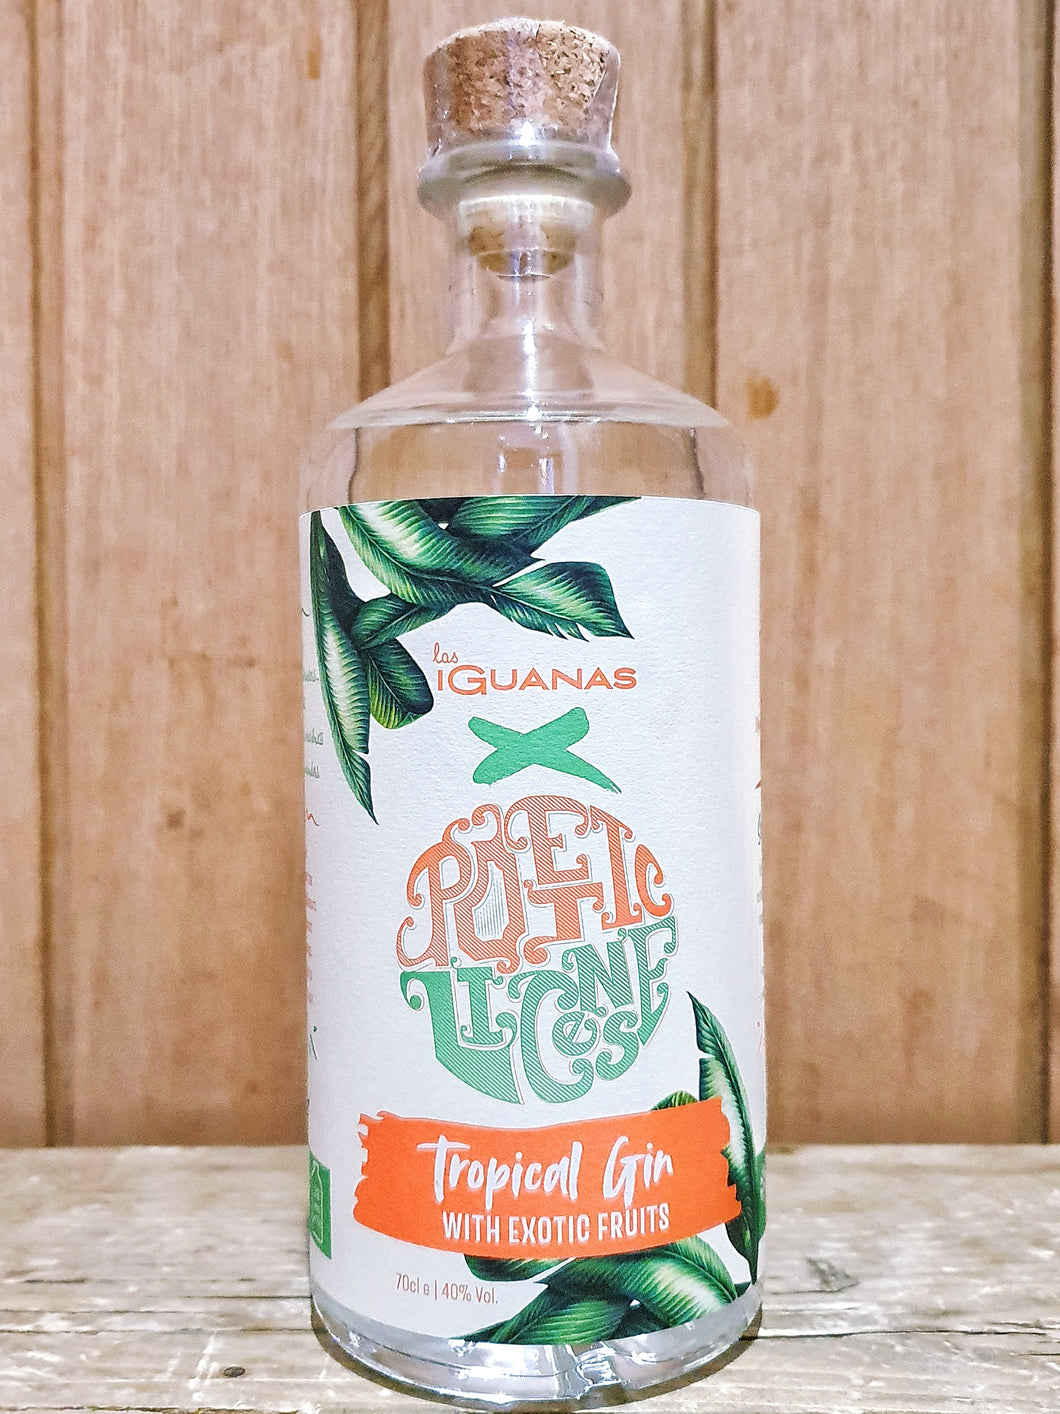 Poetic License - Las Iguanas Tropical Gin